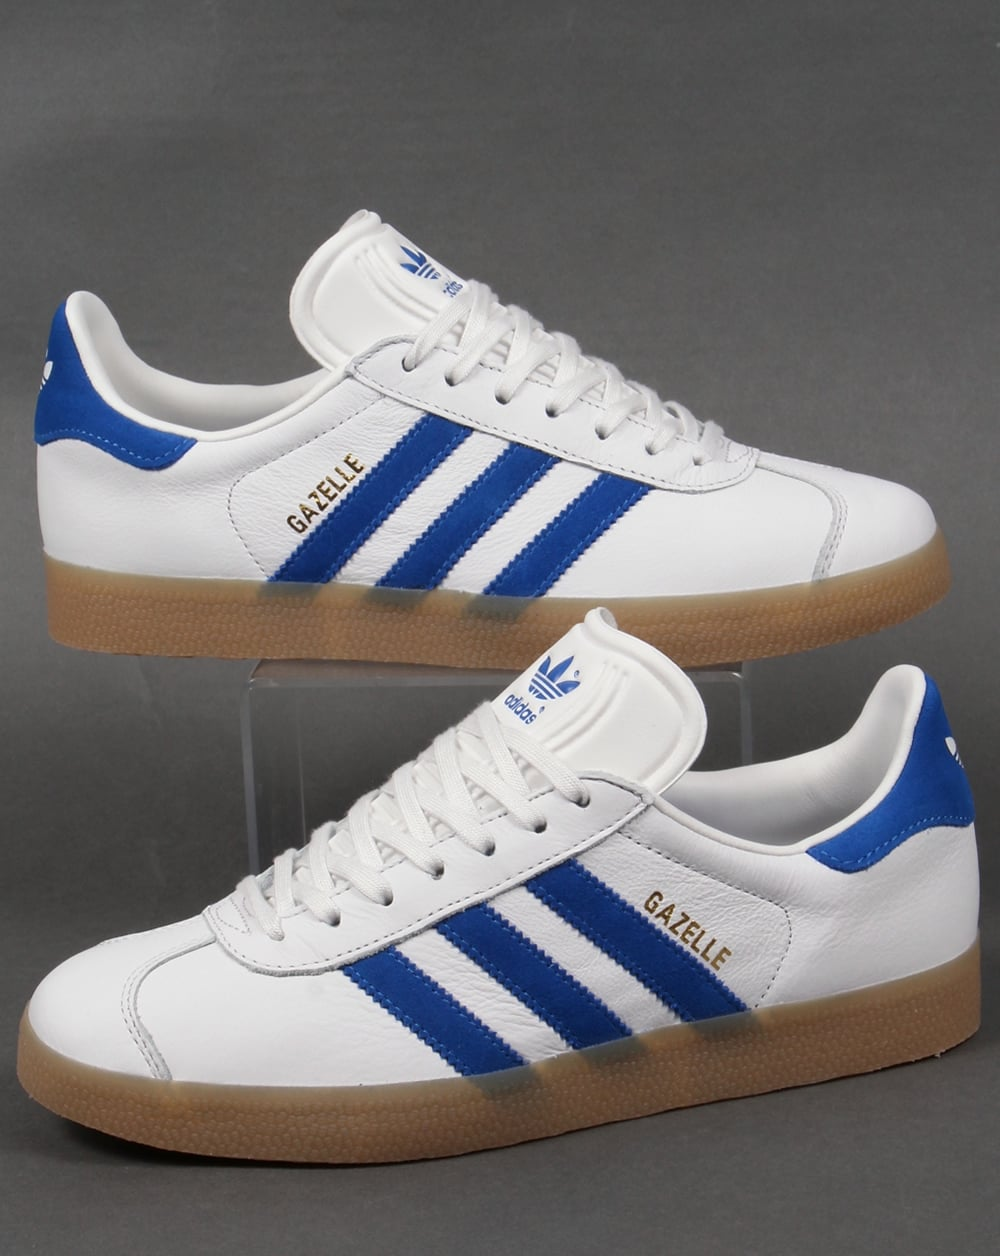 adidas Trainers Adidas Gazelle Leather Trainers White Royal Gum b8ca6d94c